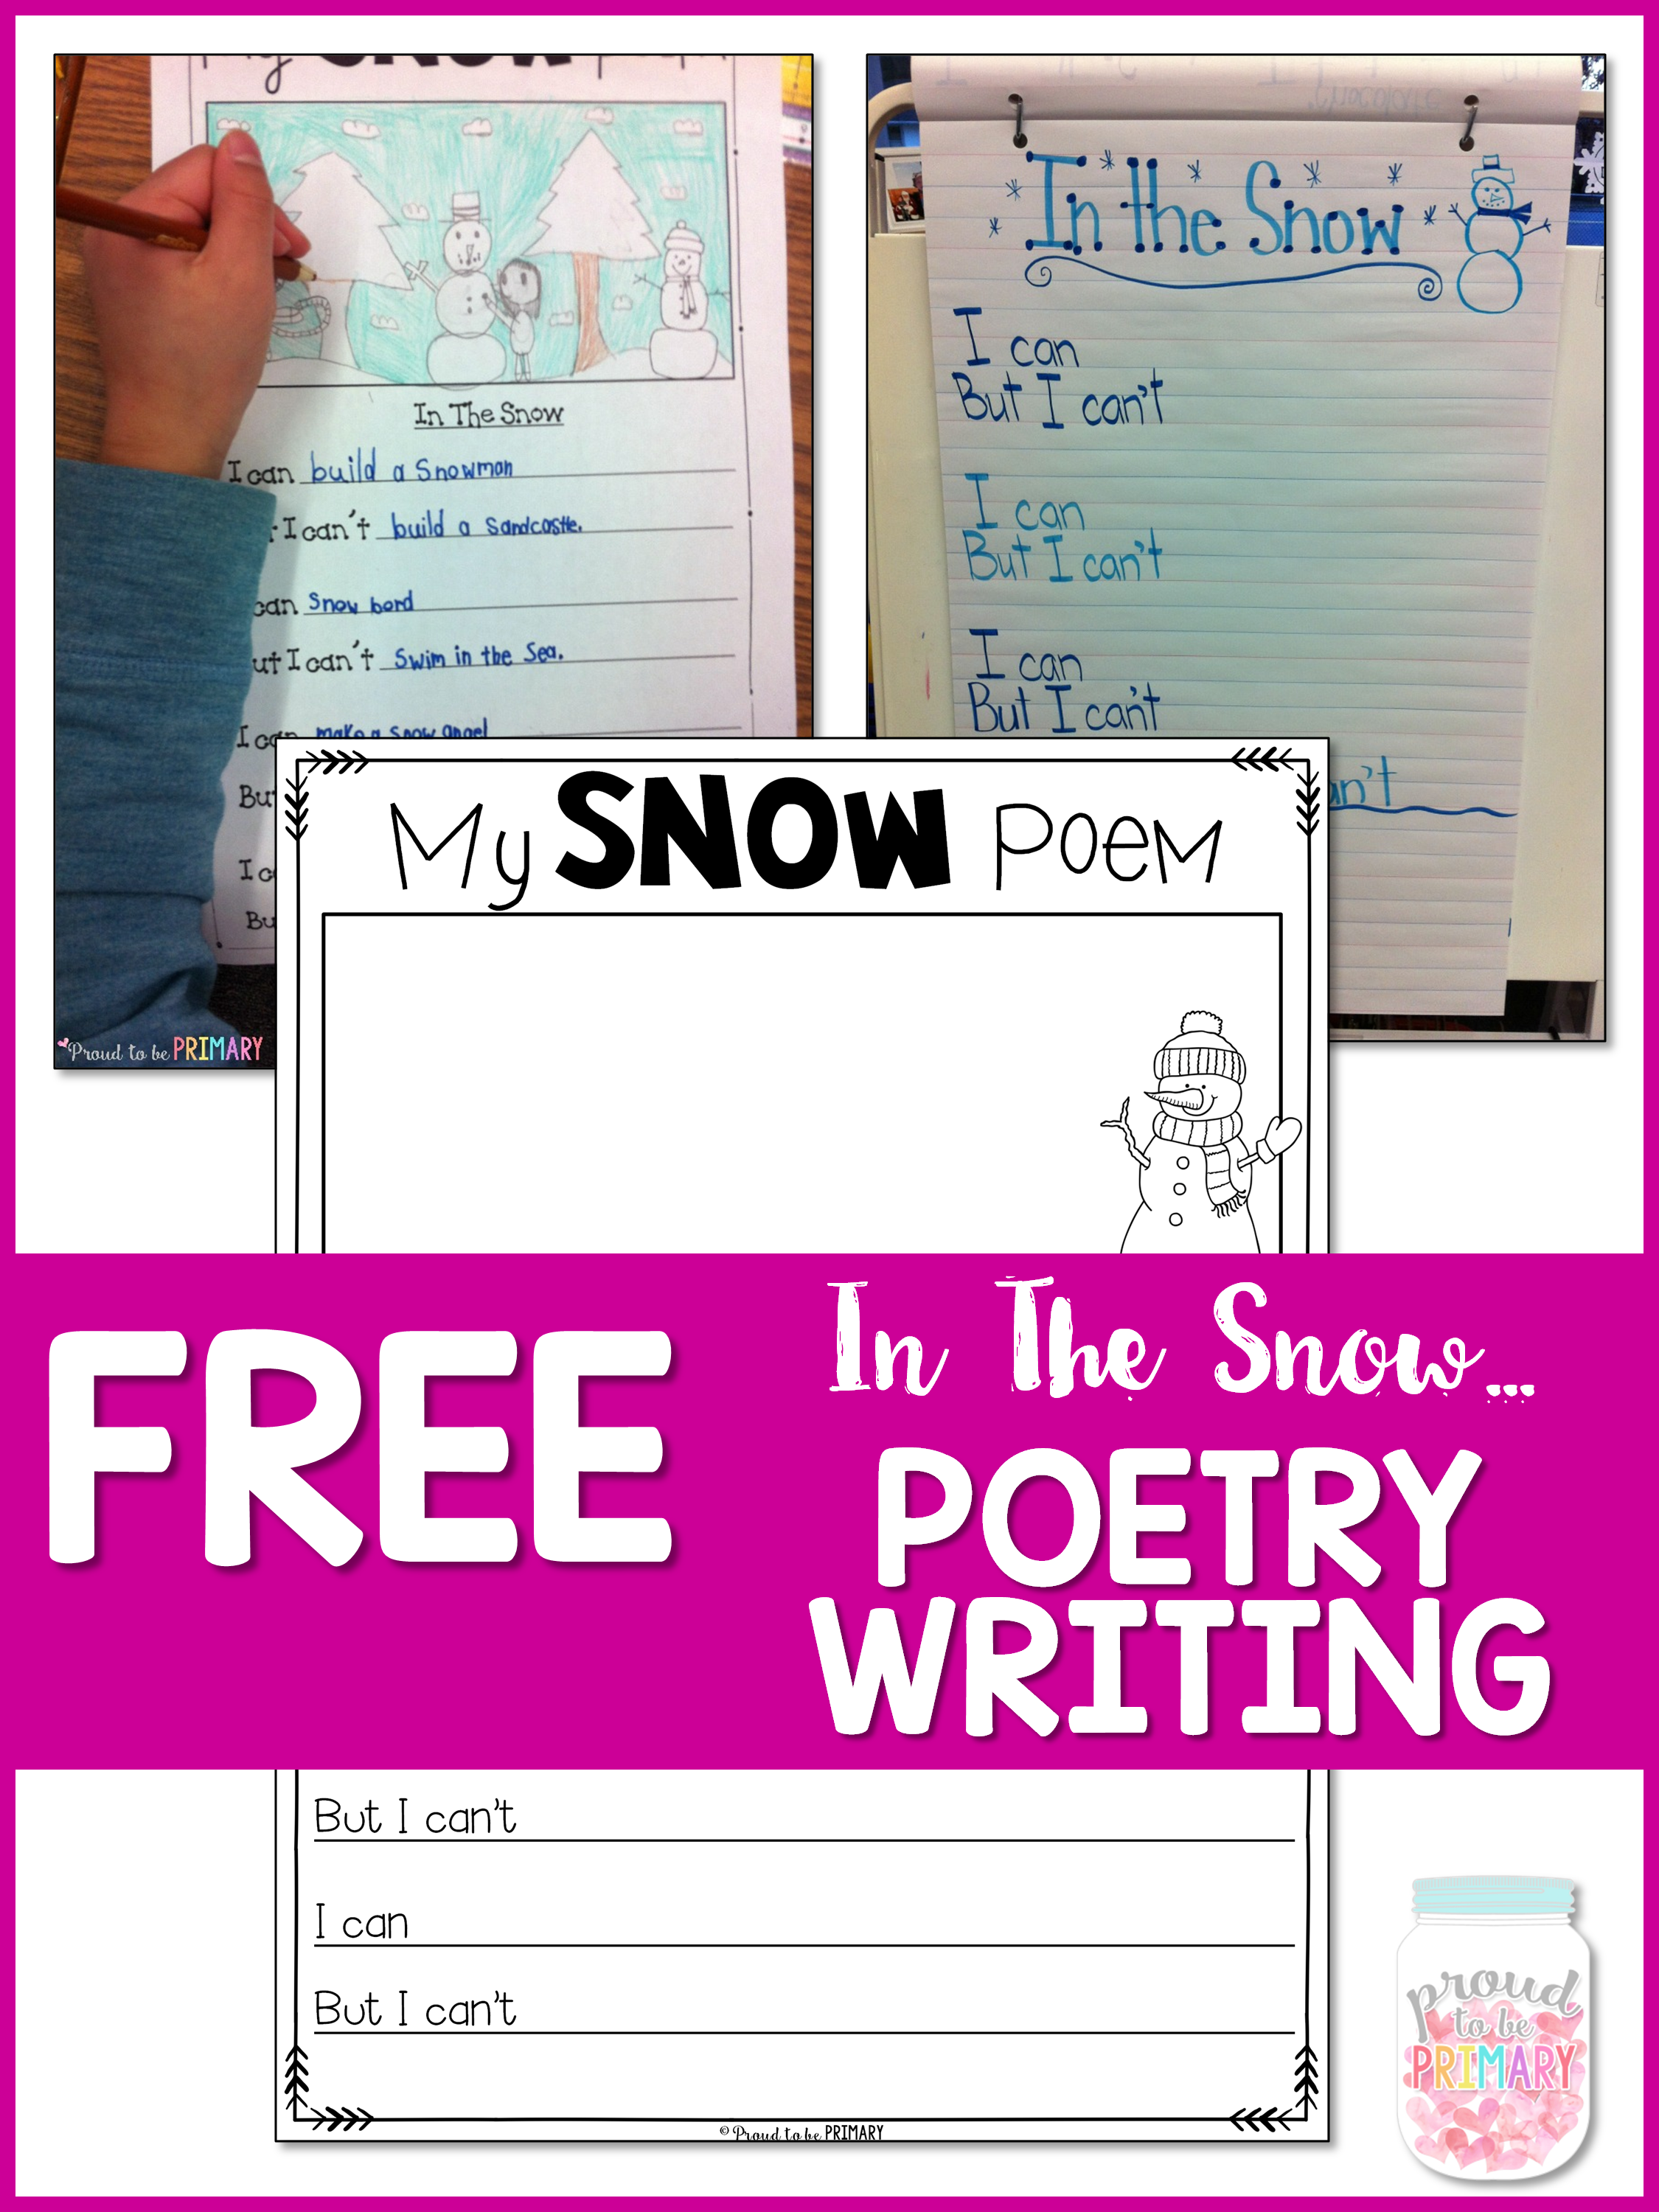 Snow Poetry: Winter Writing in the Snow - free snow poem template